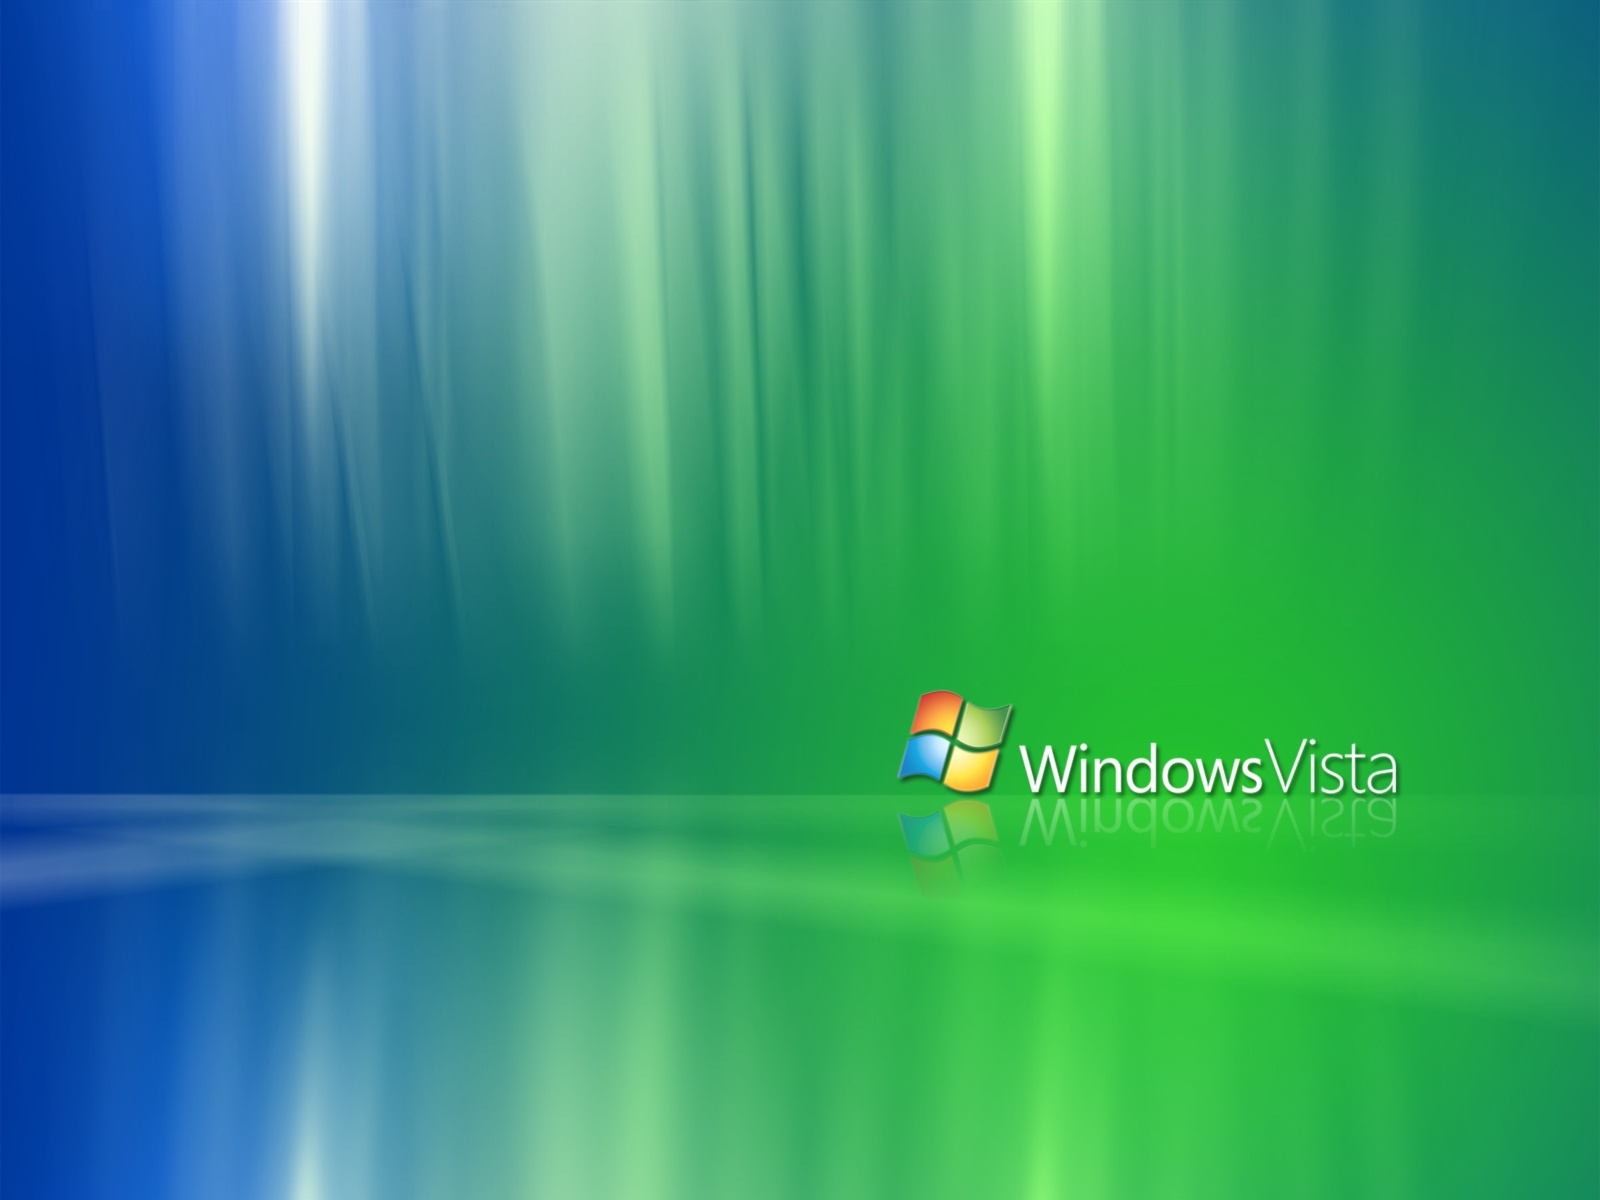 1600x1200 Windows Vista